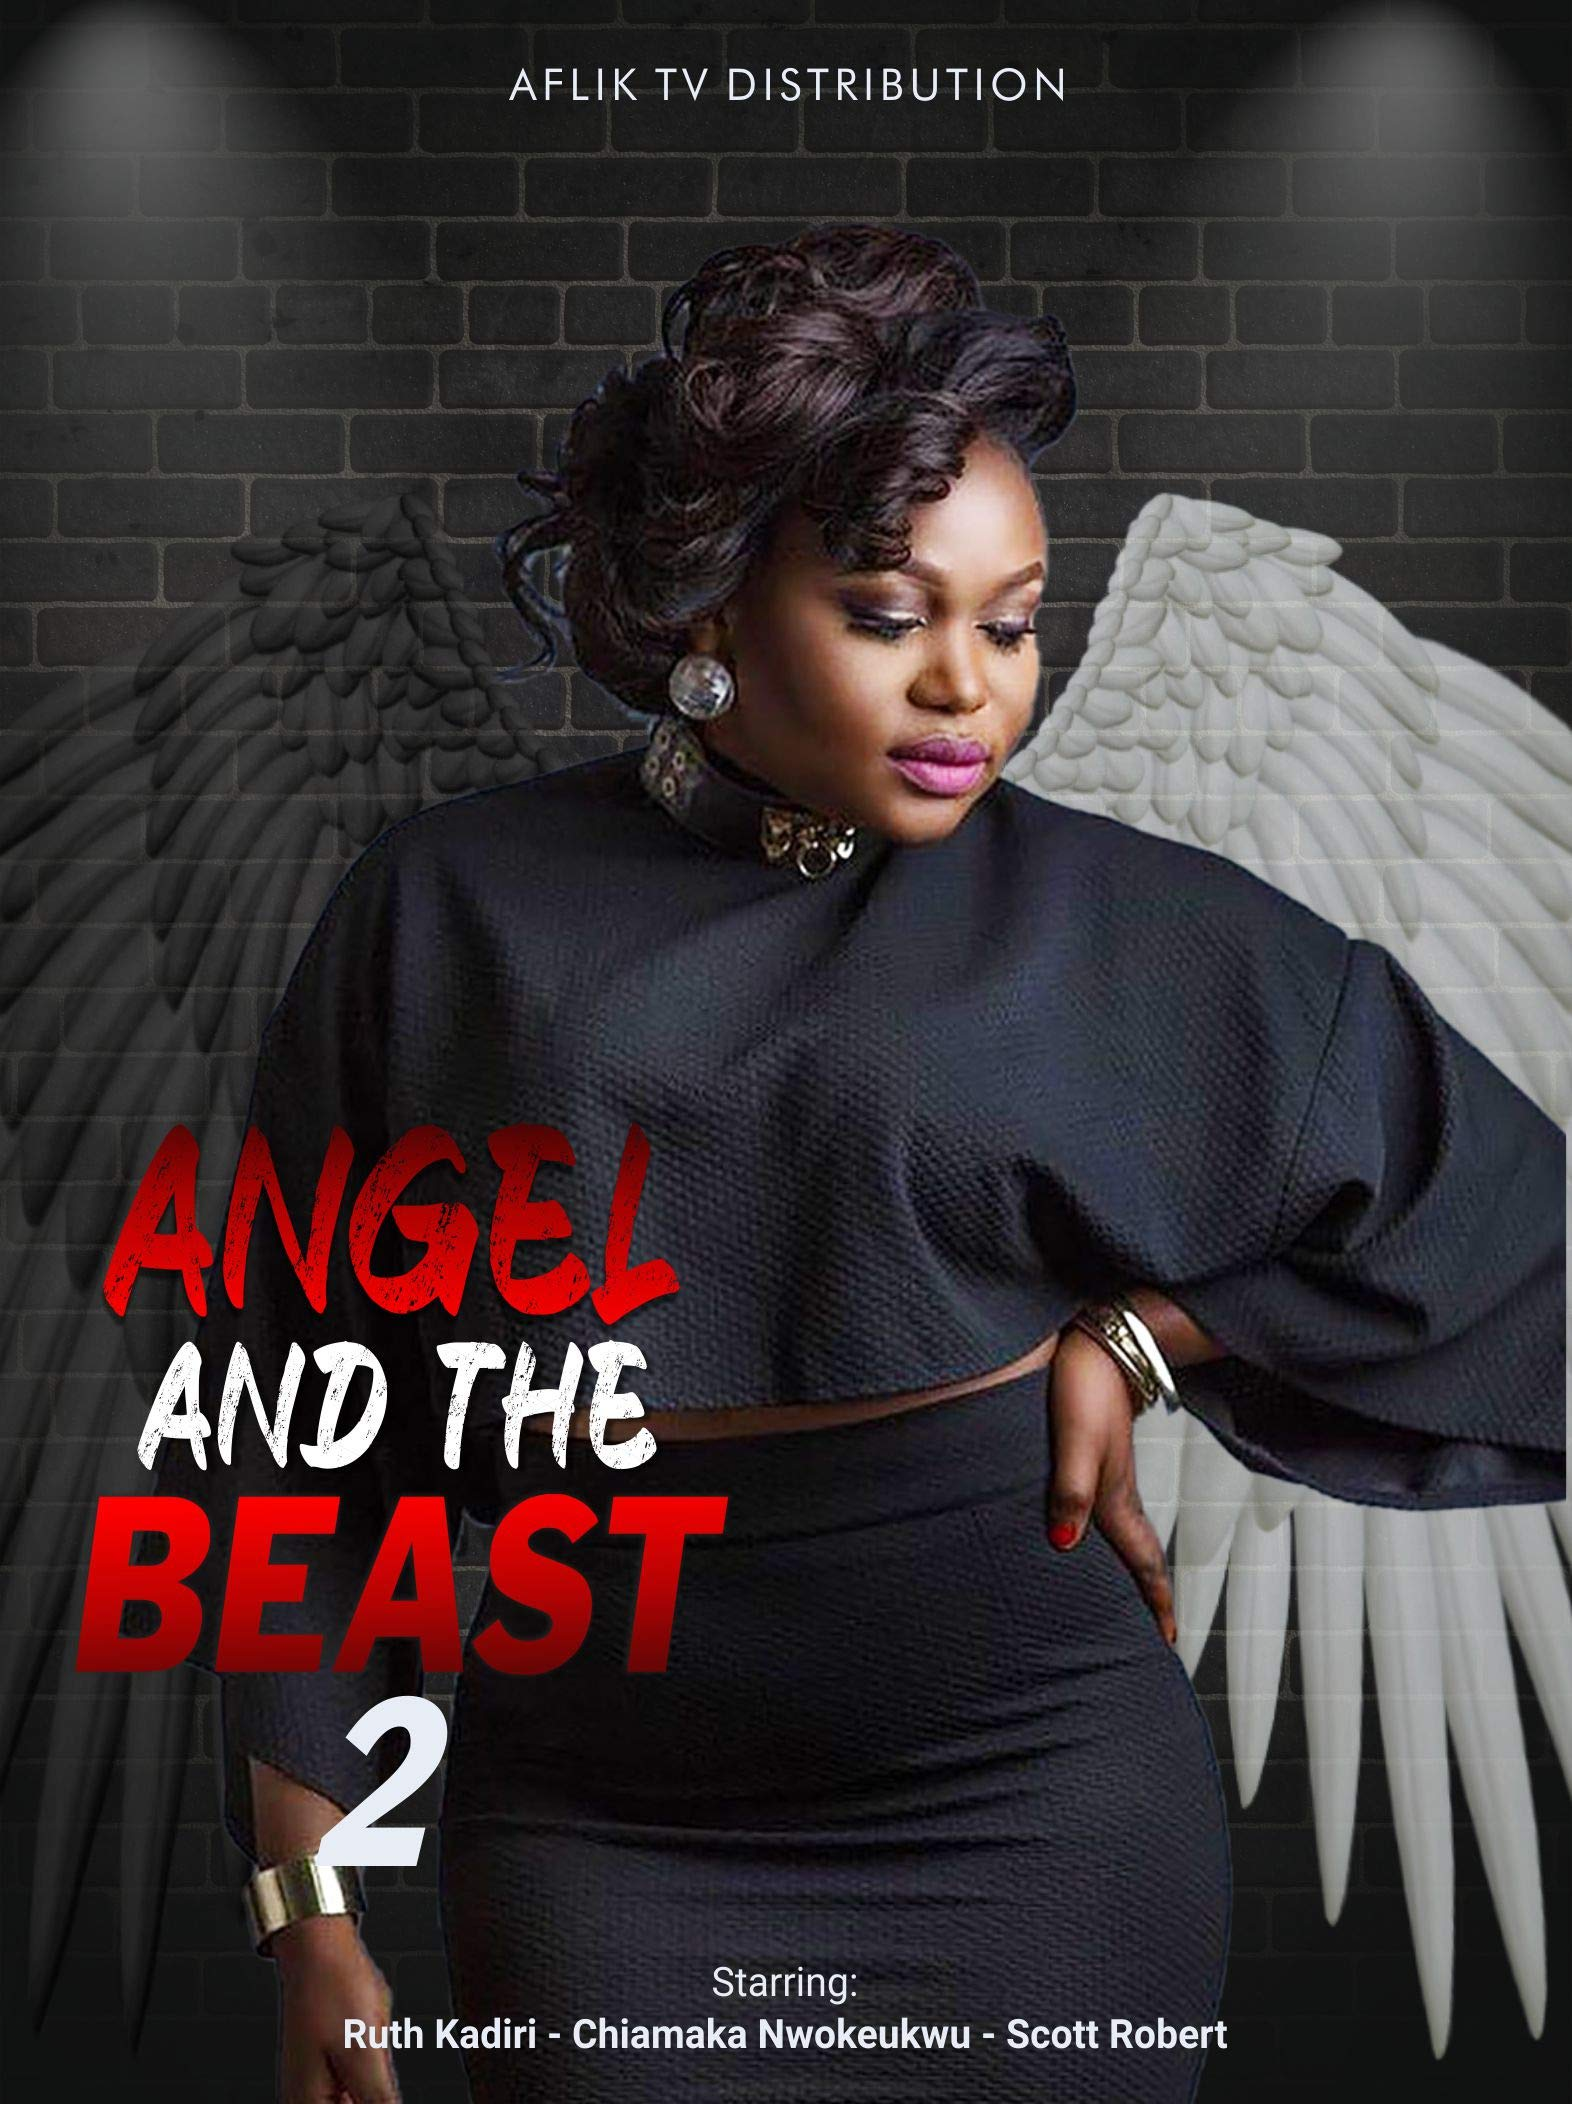 Angel and the beast 2